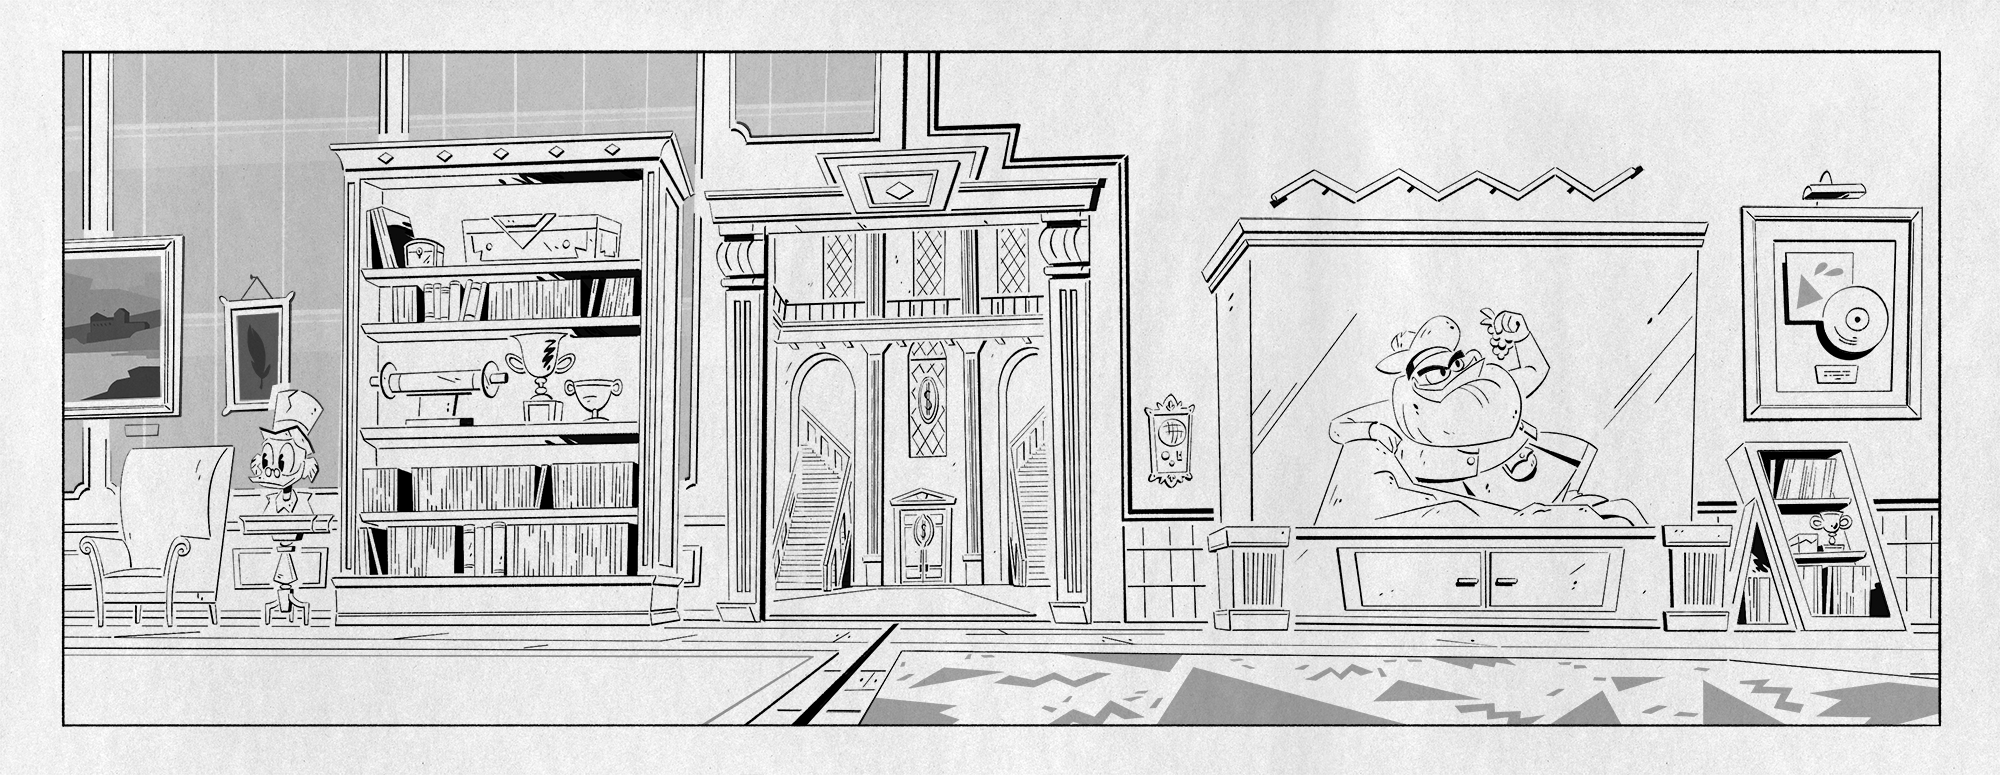 Layout for episode 8.